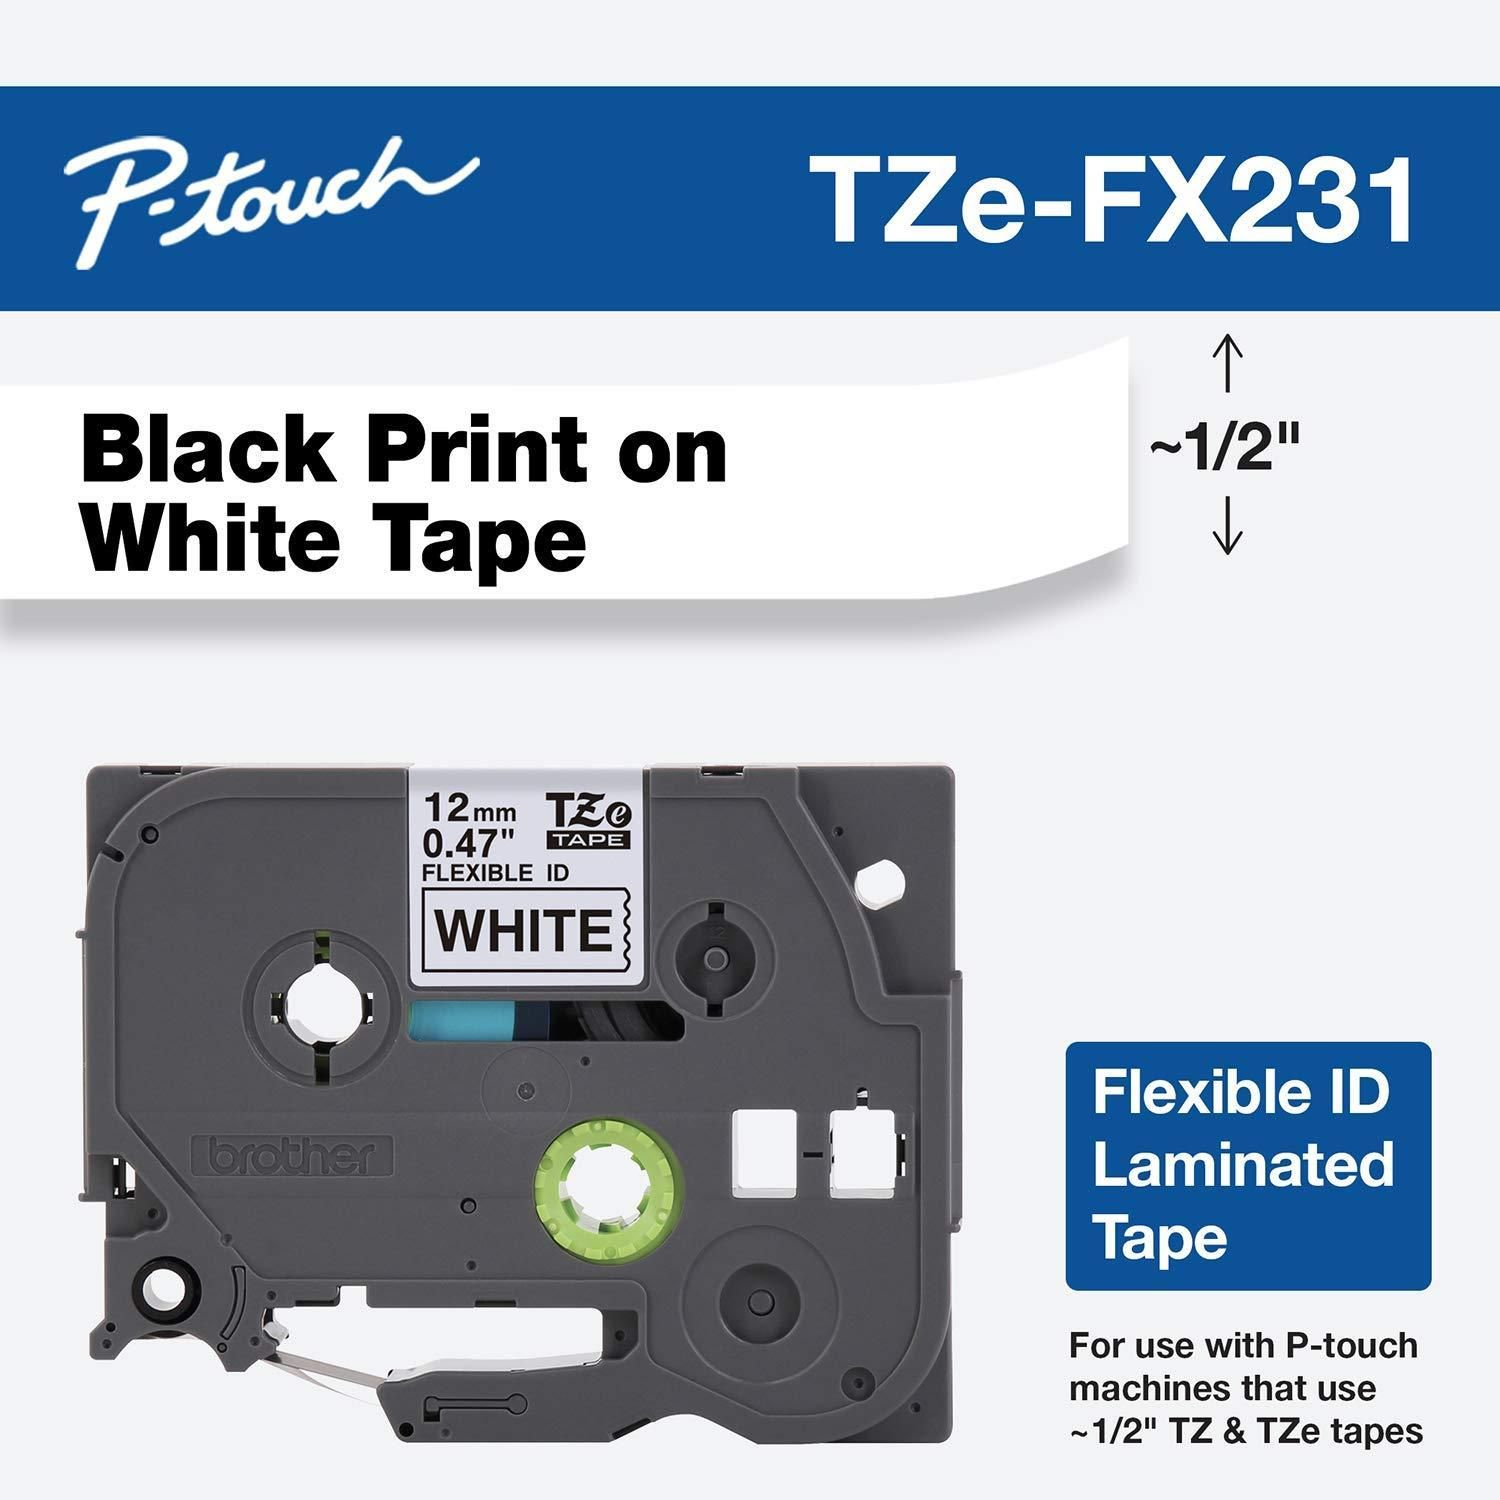 Take A Look At This New Item Available Brother Tzefx231 Check It Out Here Http Www Widgetree Com Produ In 2020 White Tape Label Maker Tape Brother Label Maker